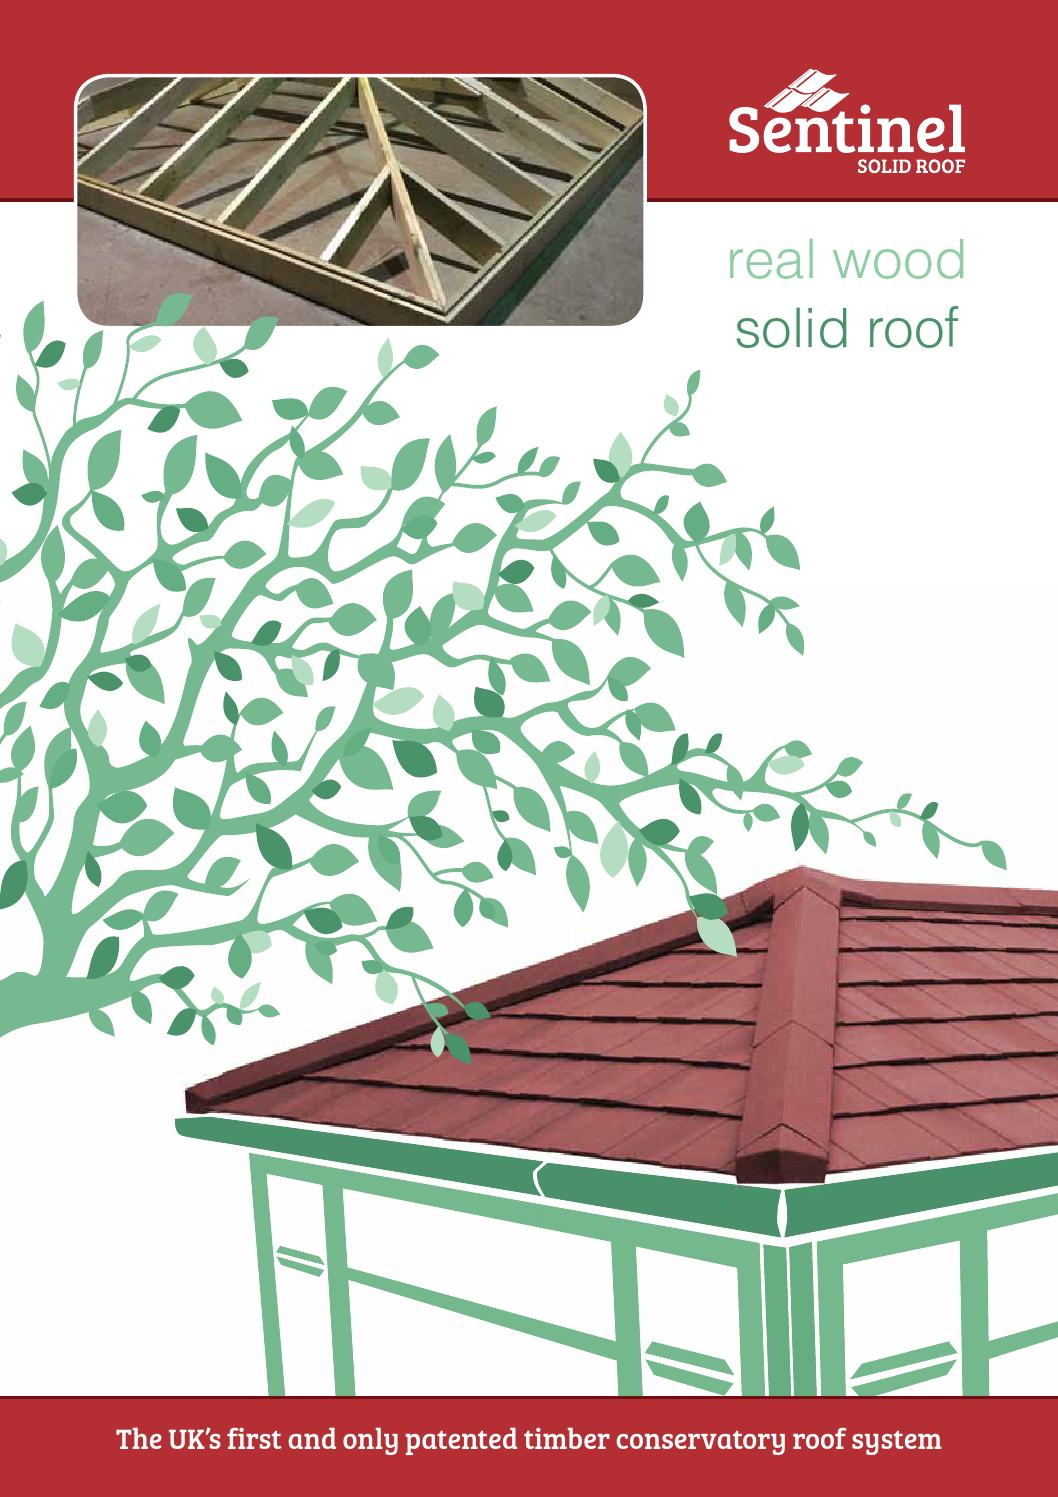 Sentinel Solid Roof Retail Brochure 10 November 2015 By